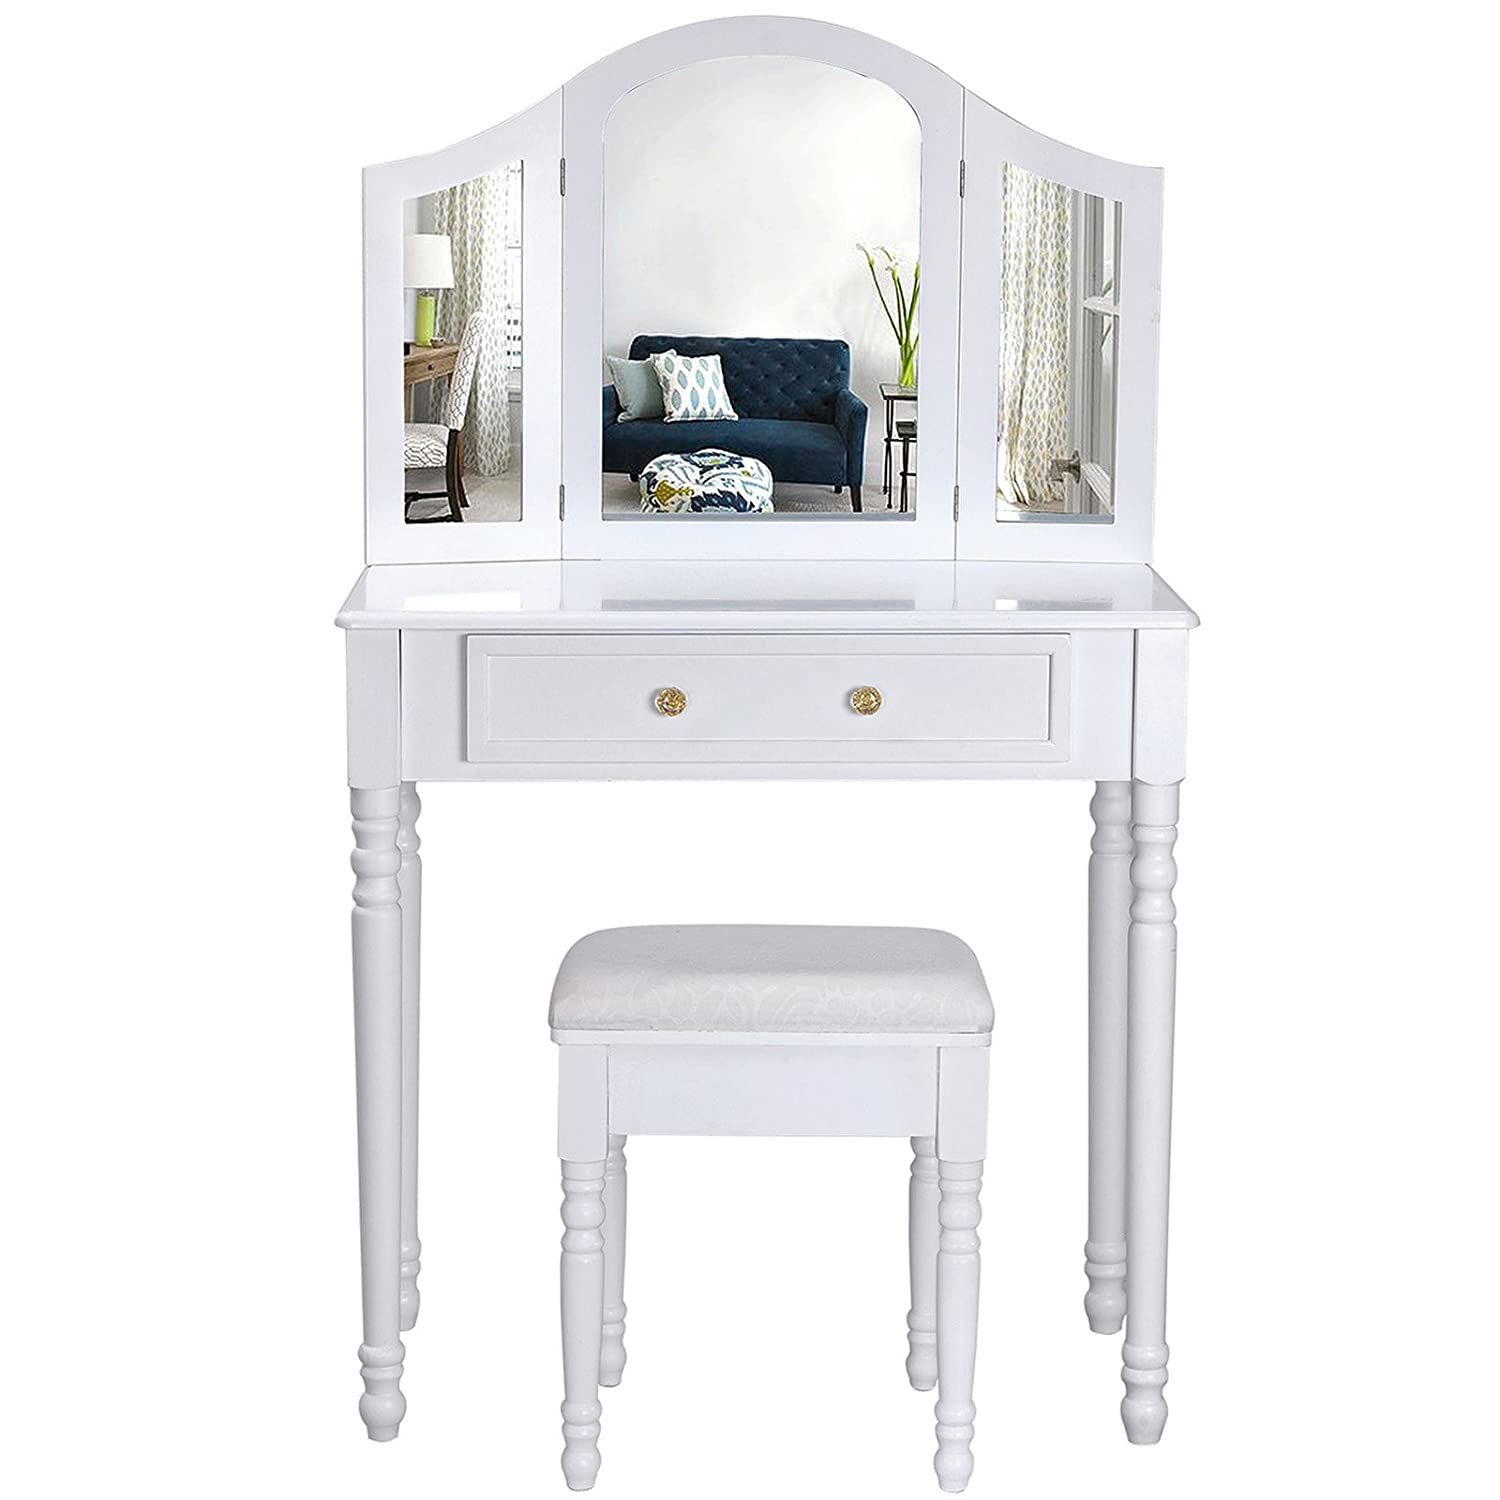 beautiful songmics coiffeuse meuble blanctable de maquillage commode avec miroirs rabattables et. Black Bedroom Furniture Sets. Home Design Ideas